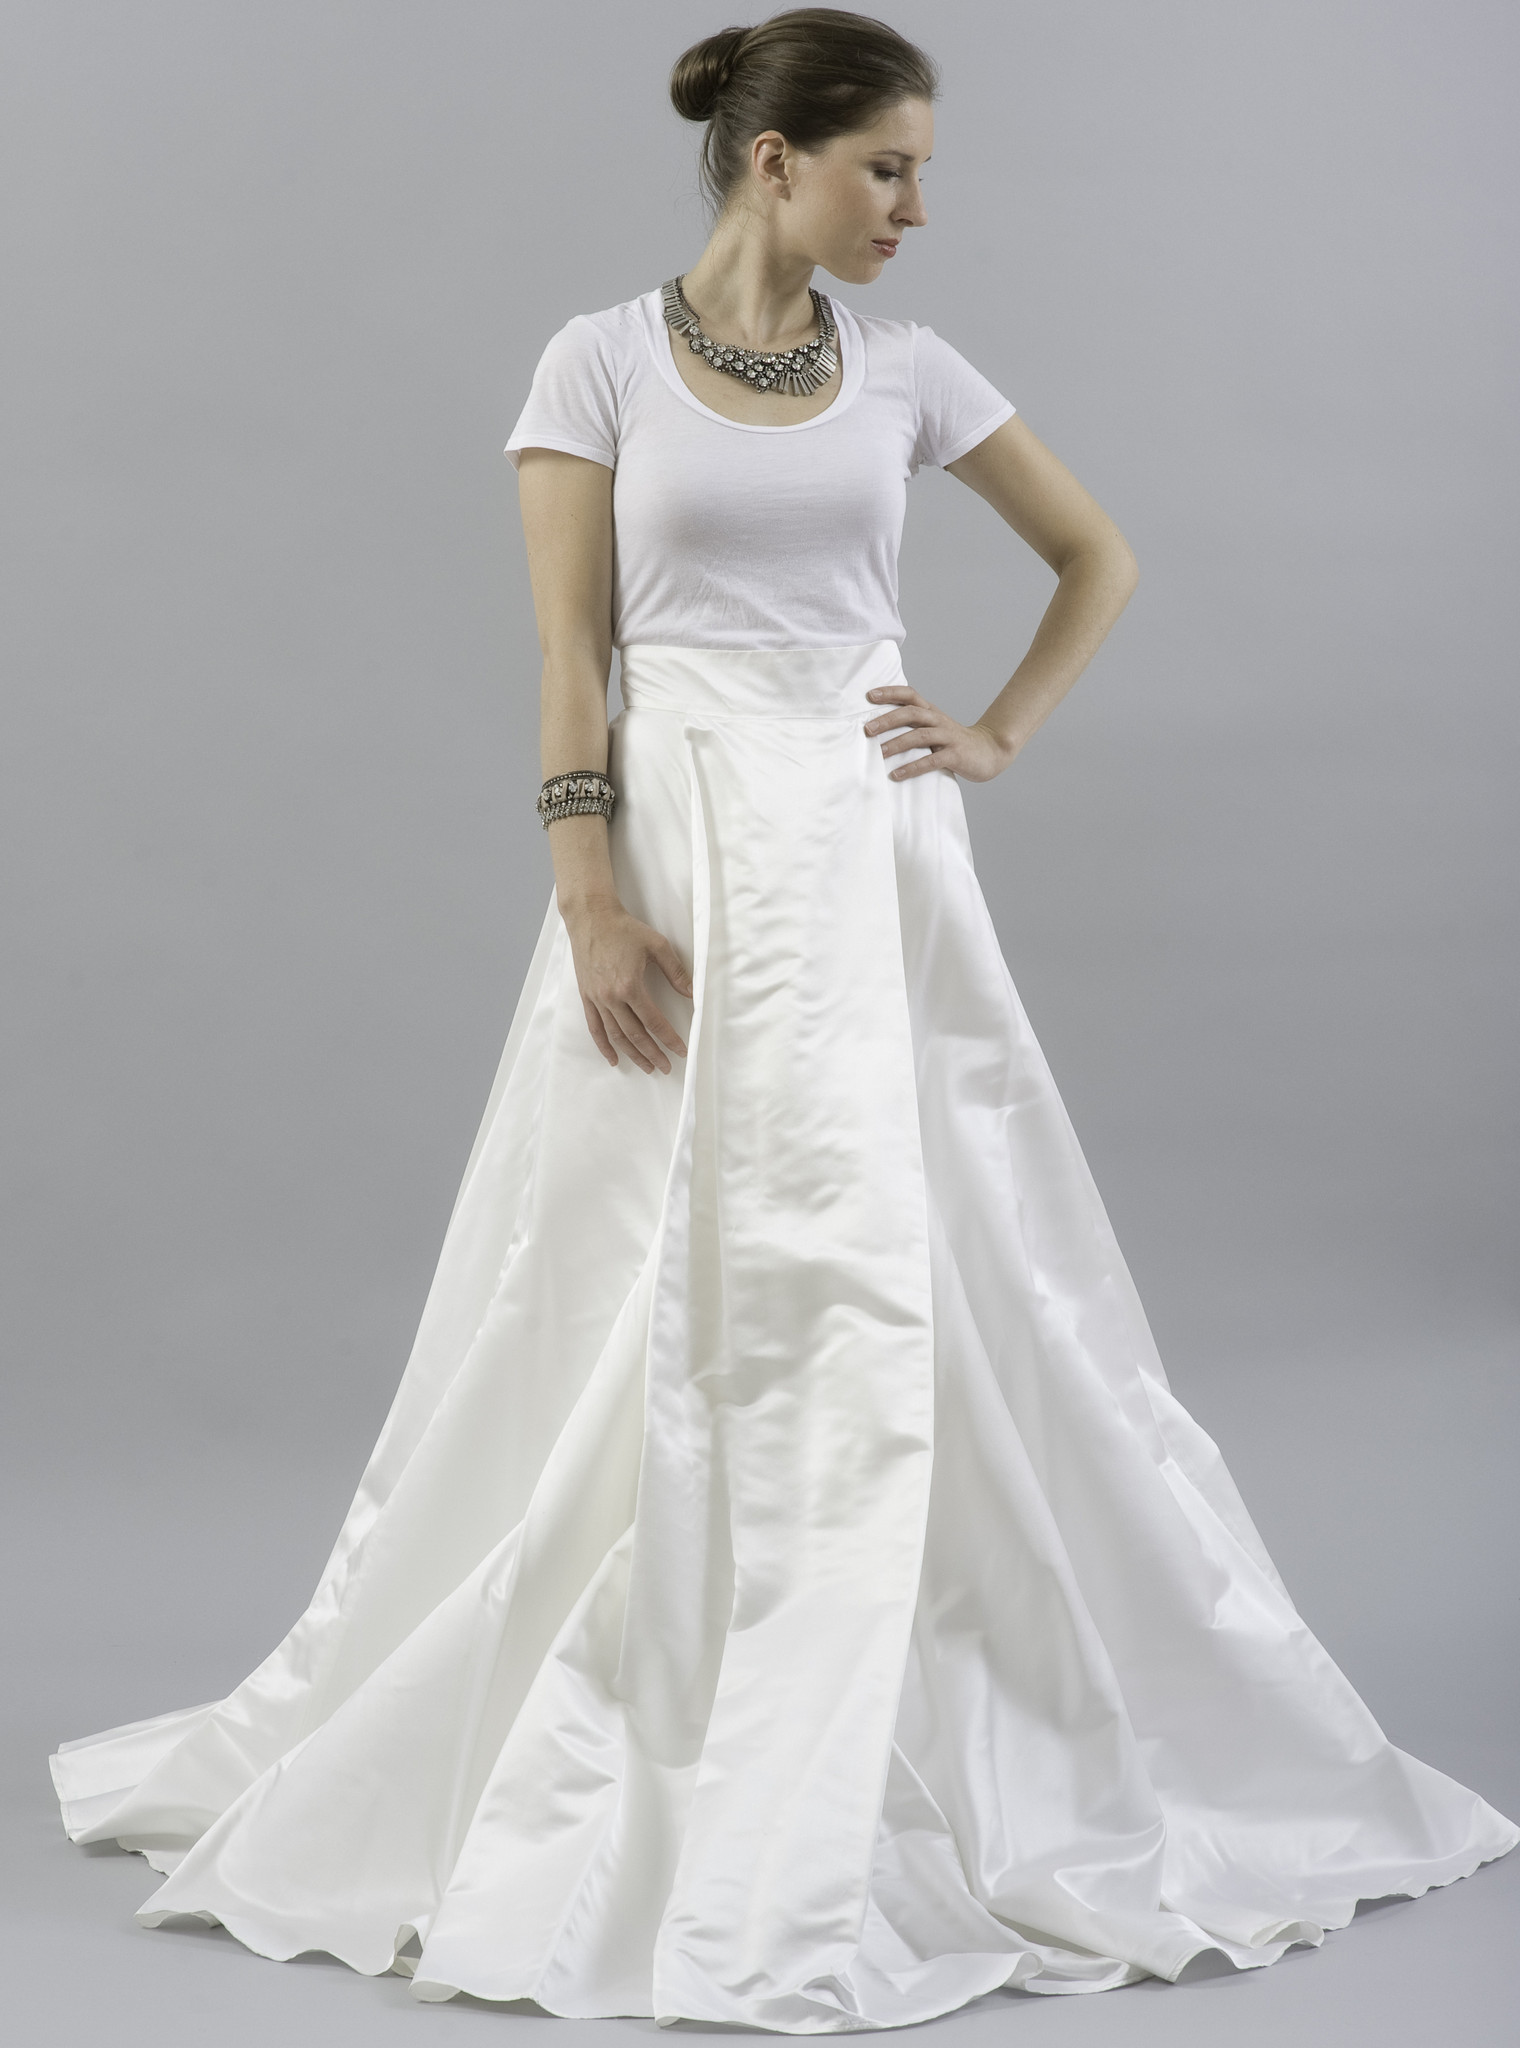 modern wedding dresses for the contemporary bride modern wedding dresses Modern Wedding Dresses For the Contemporary Bride